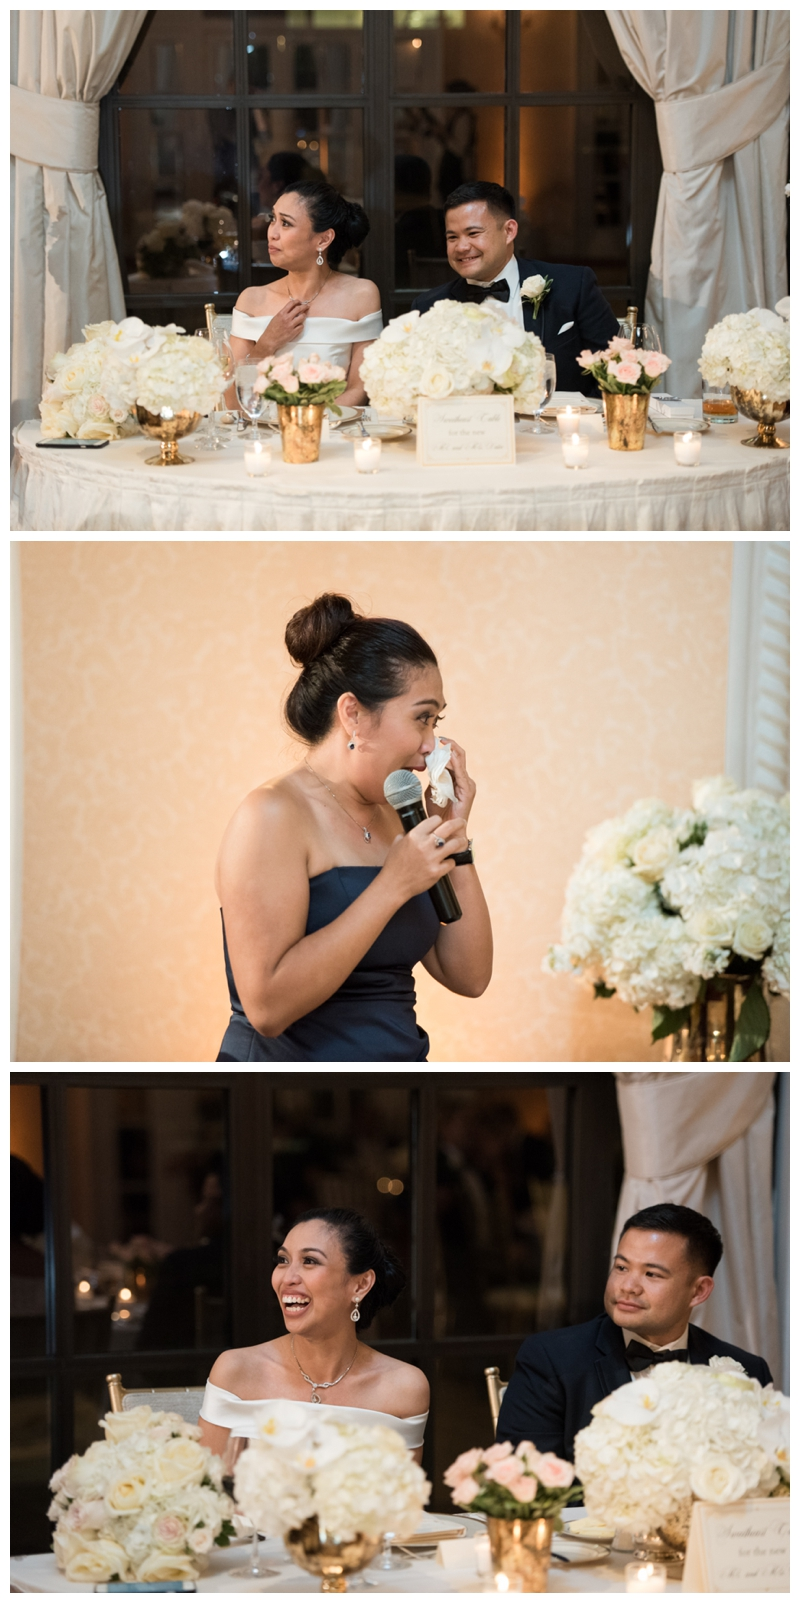 Wedding in Washington DC at the St Regis Hotel by Rachael Foster Photography_0075.jpg